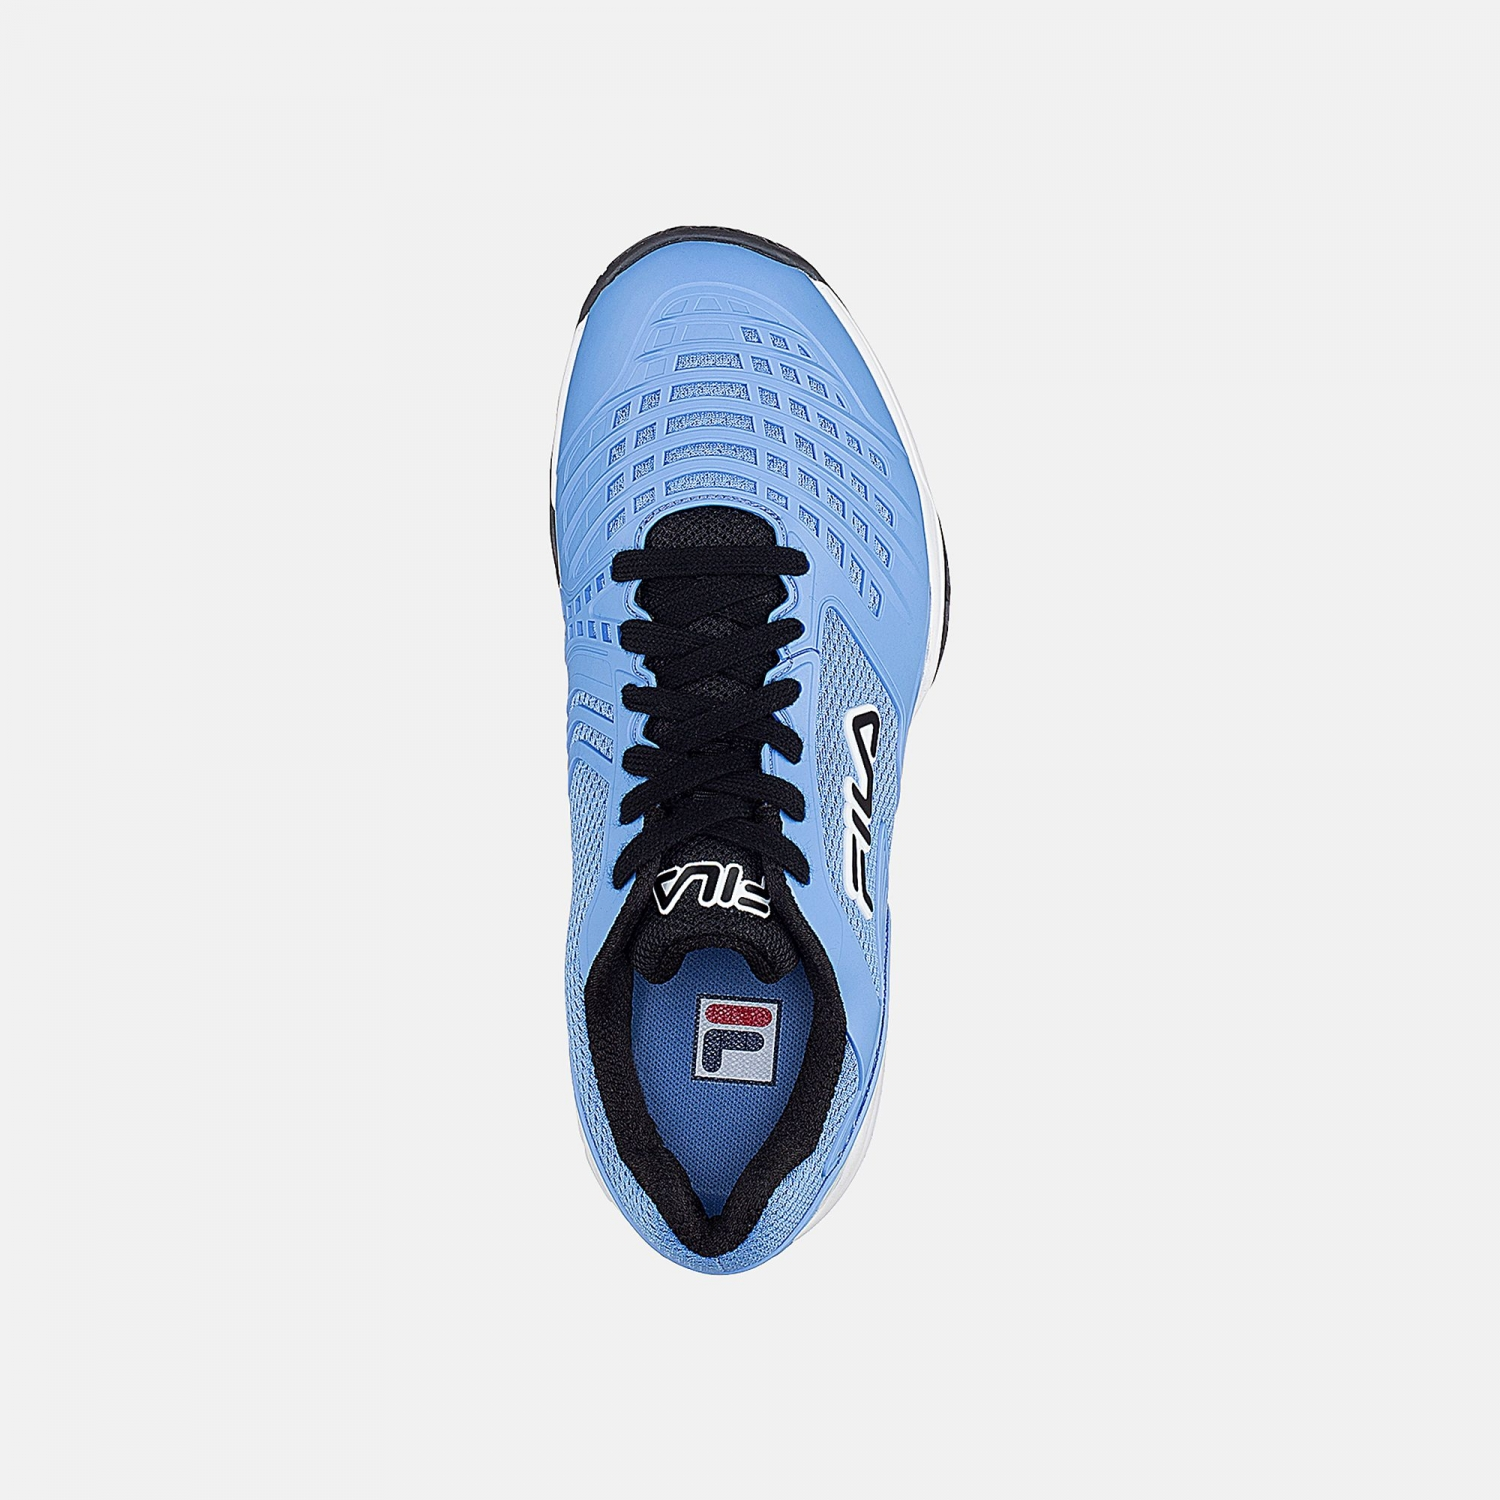 Fila Axilus 2 Energized Tennis Shoe Men blue-white-black Bild 4